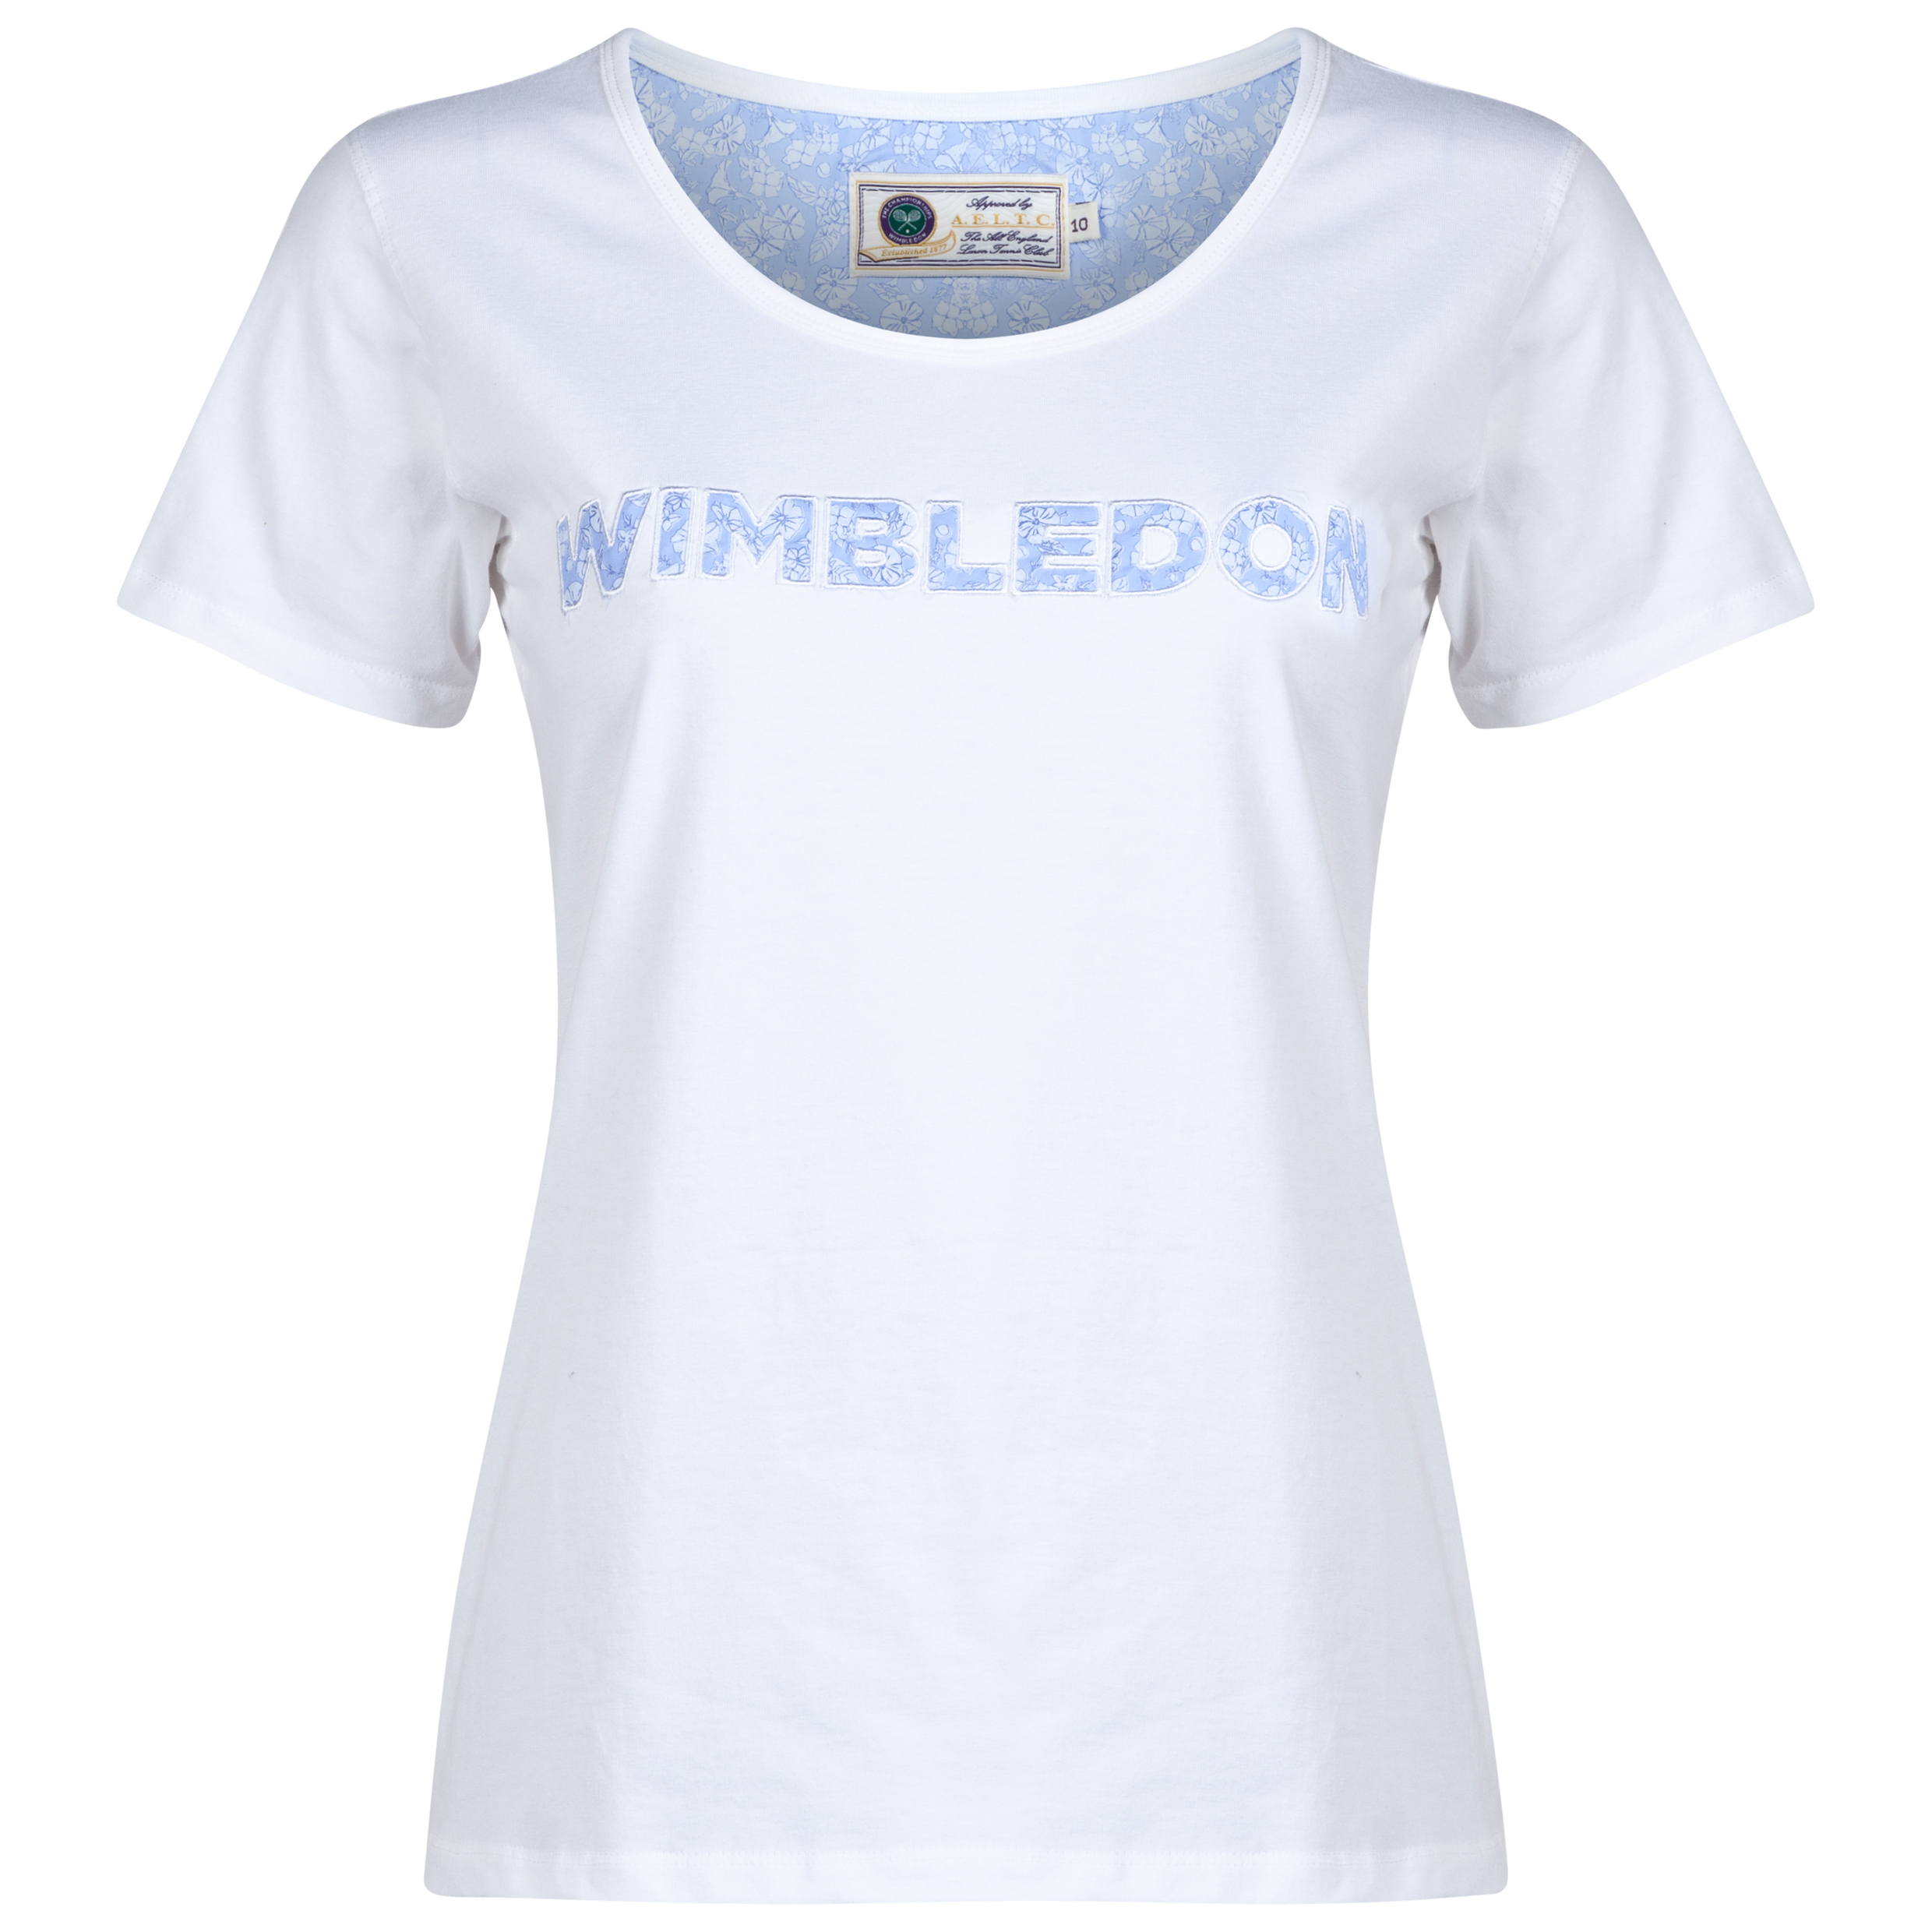 Wimbledon Floral Print Applique T-Shirt - Ladies White